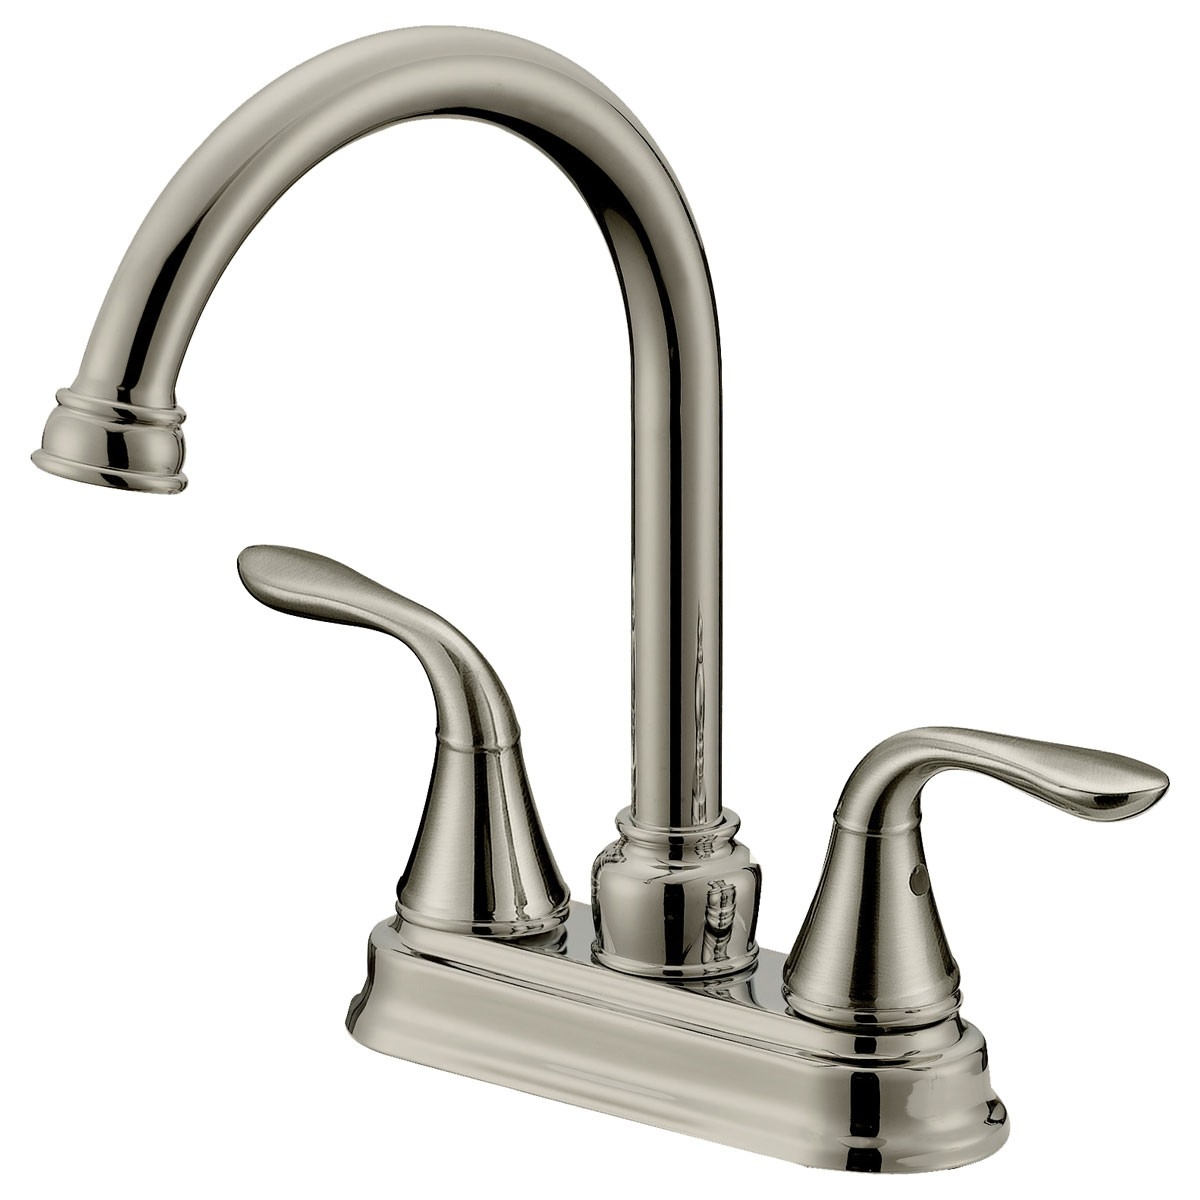 Ideas, bar sink faucets brushed nickel bar sink faucets brushed nickel kitchen captivating bar faucet design for luxury your kitchen 1200 x 1200  .